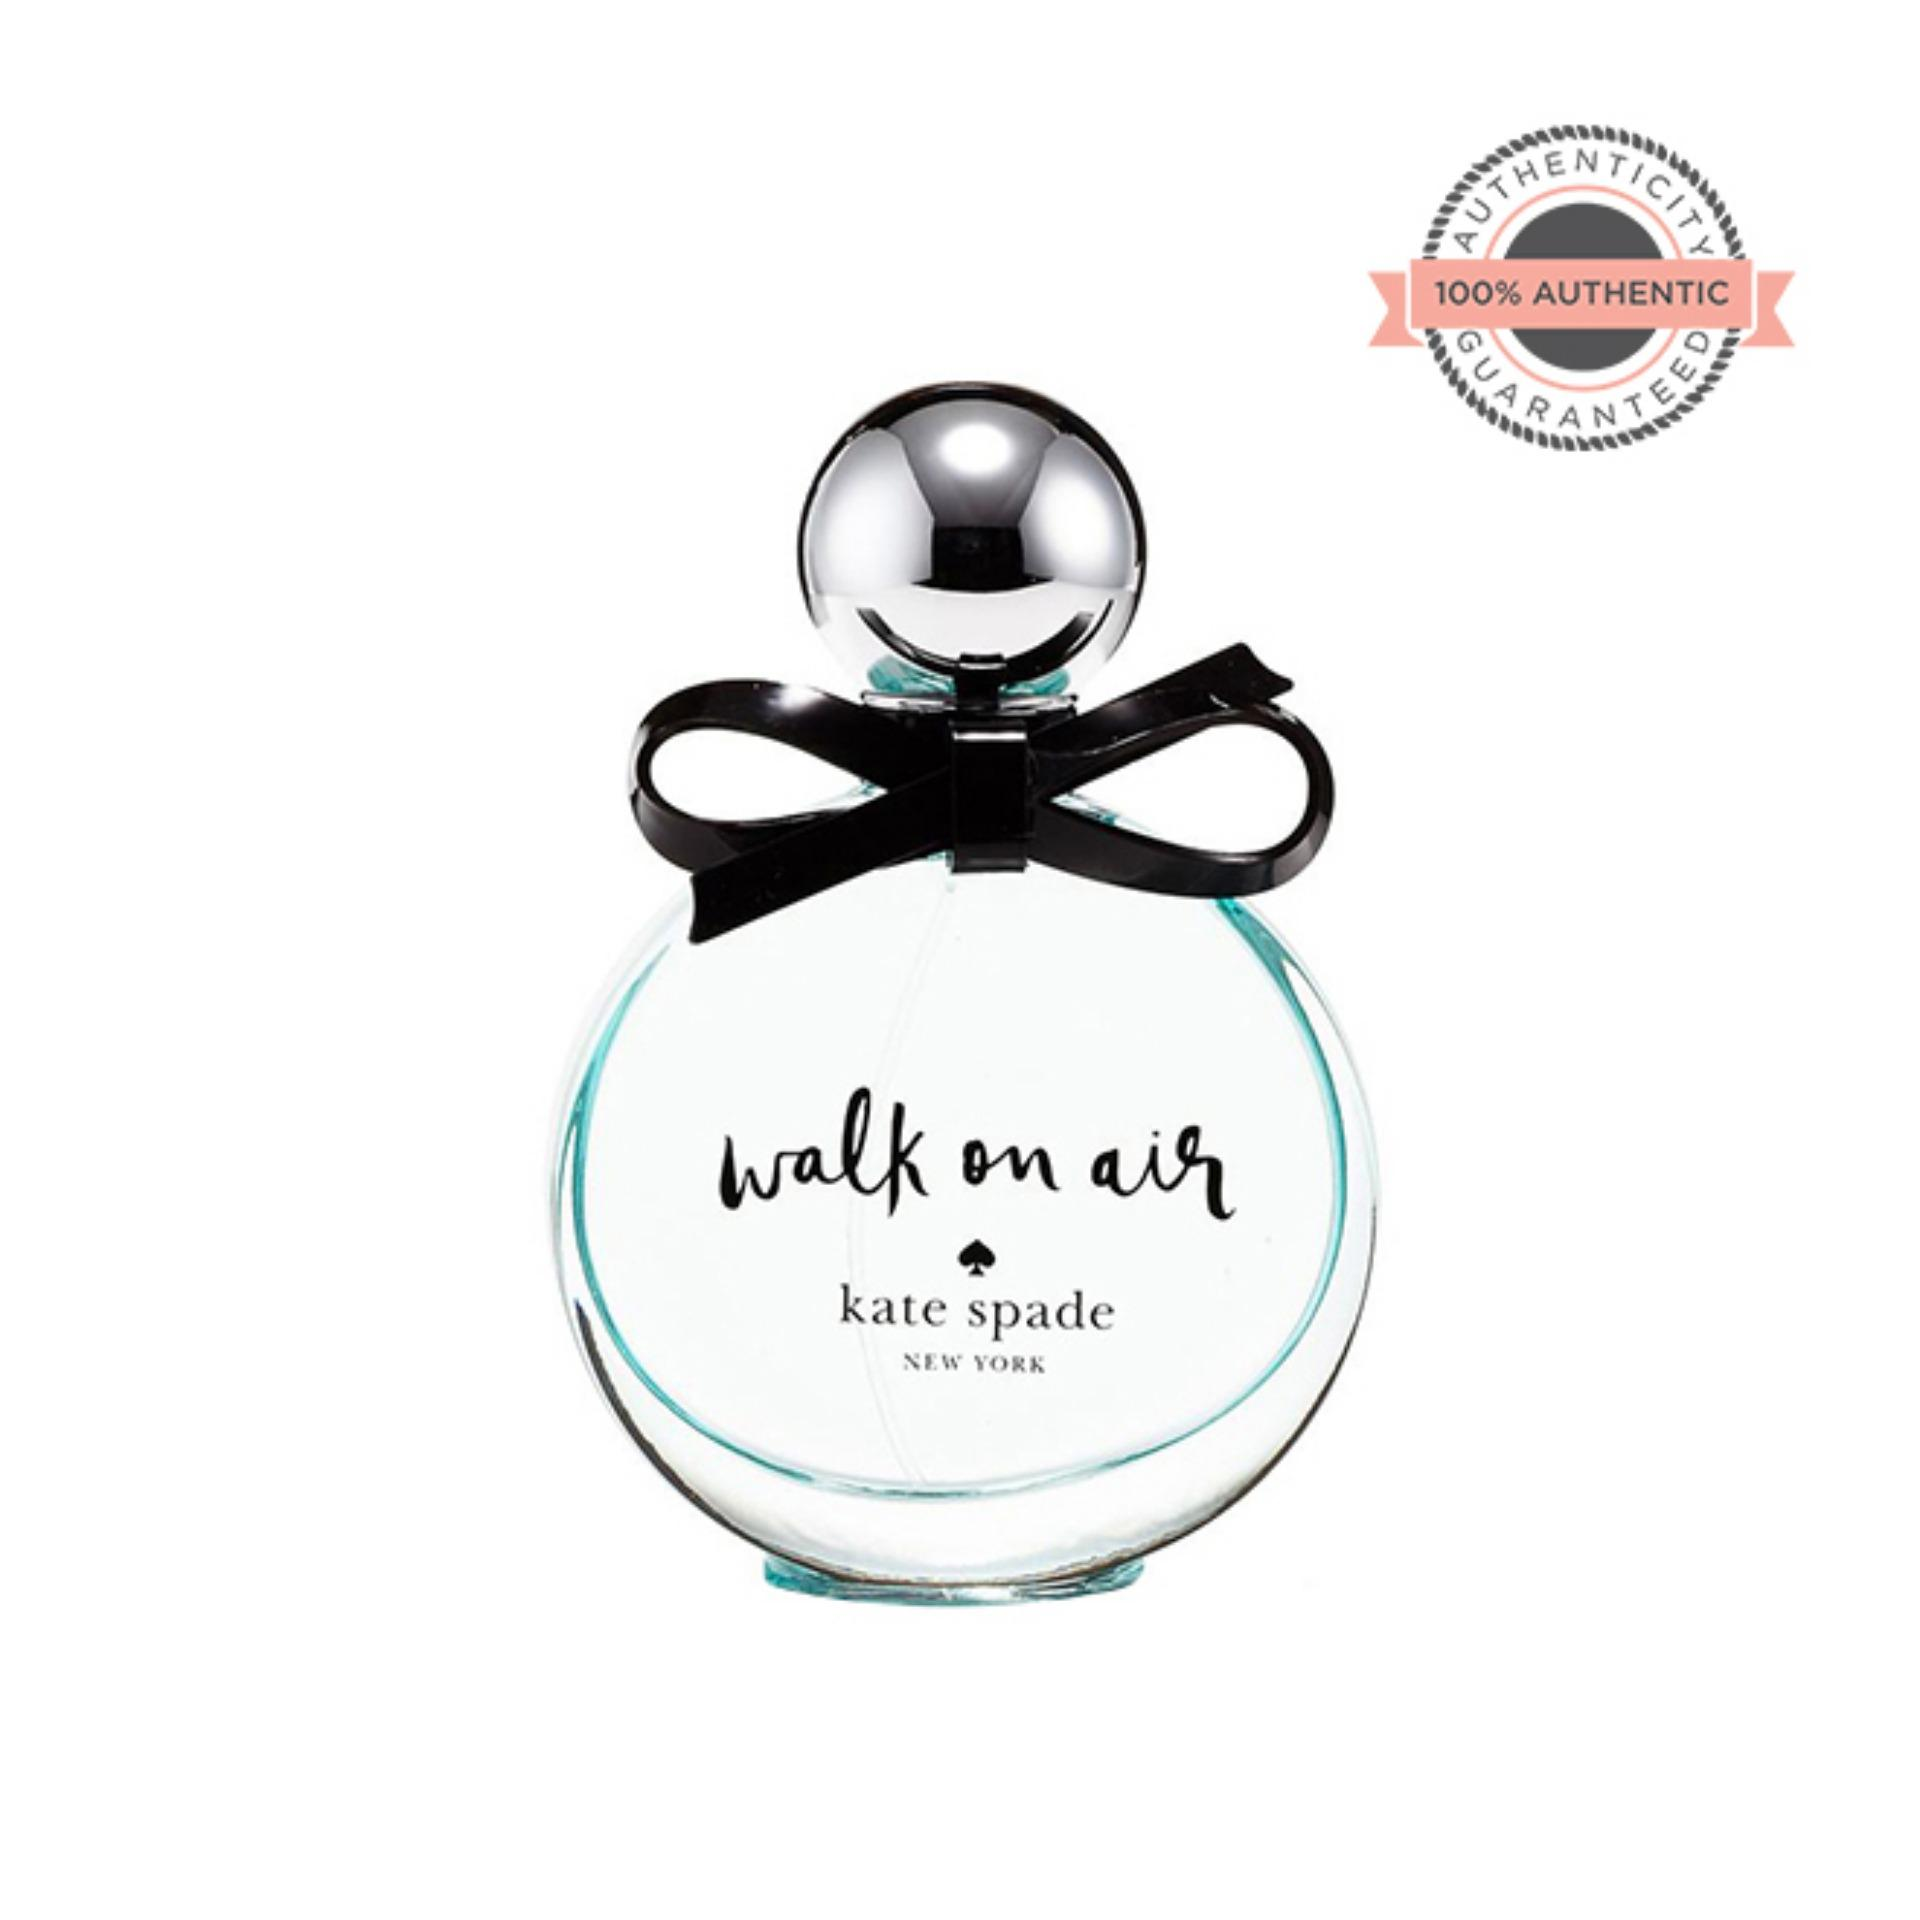 Kate Spade Walk on air Eau de Parfum 100ml